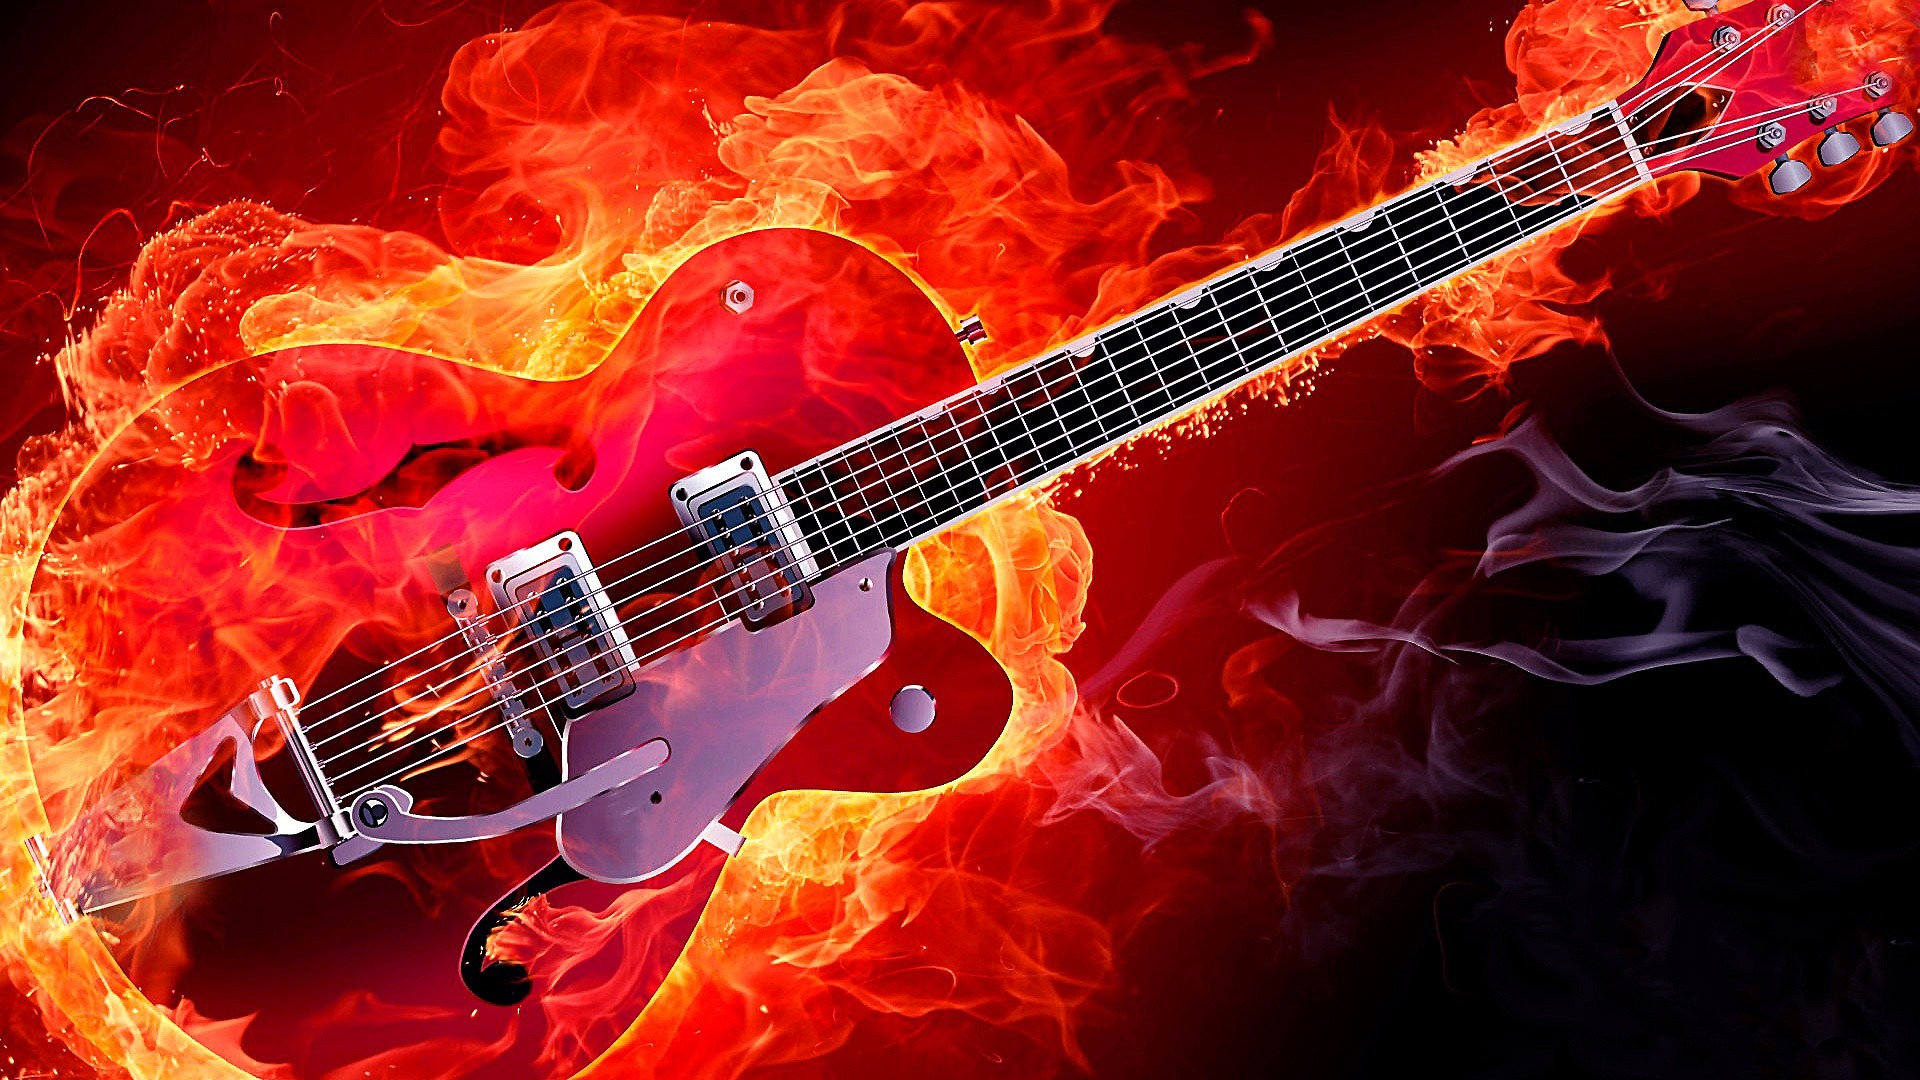 Res: 1920x1080, Rockabilly Electric Guitar On Fire Wallpaper | Wallpaper Studio 10 | Tens  of thousands HD and UltraHD wallpapers for Android, Windows and Xbox